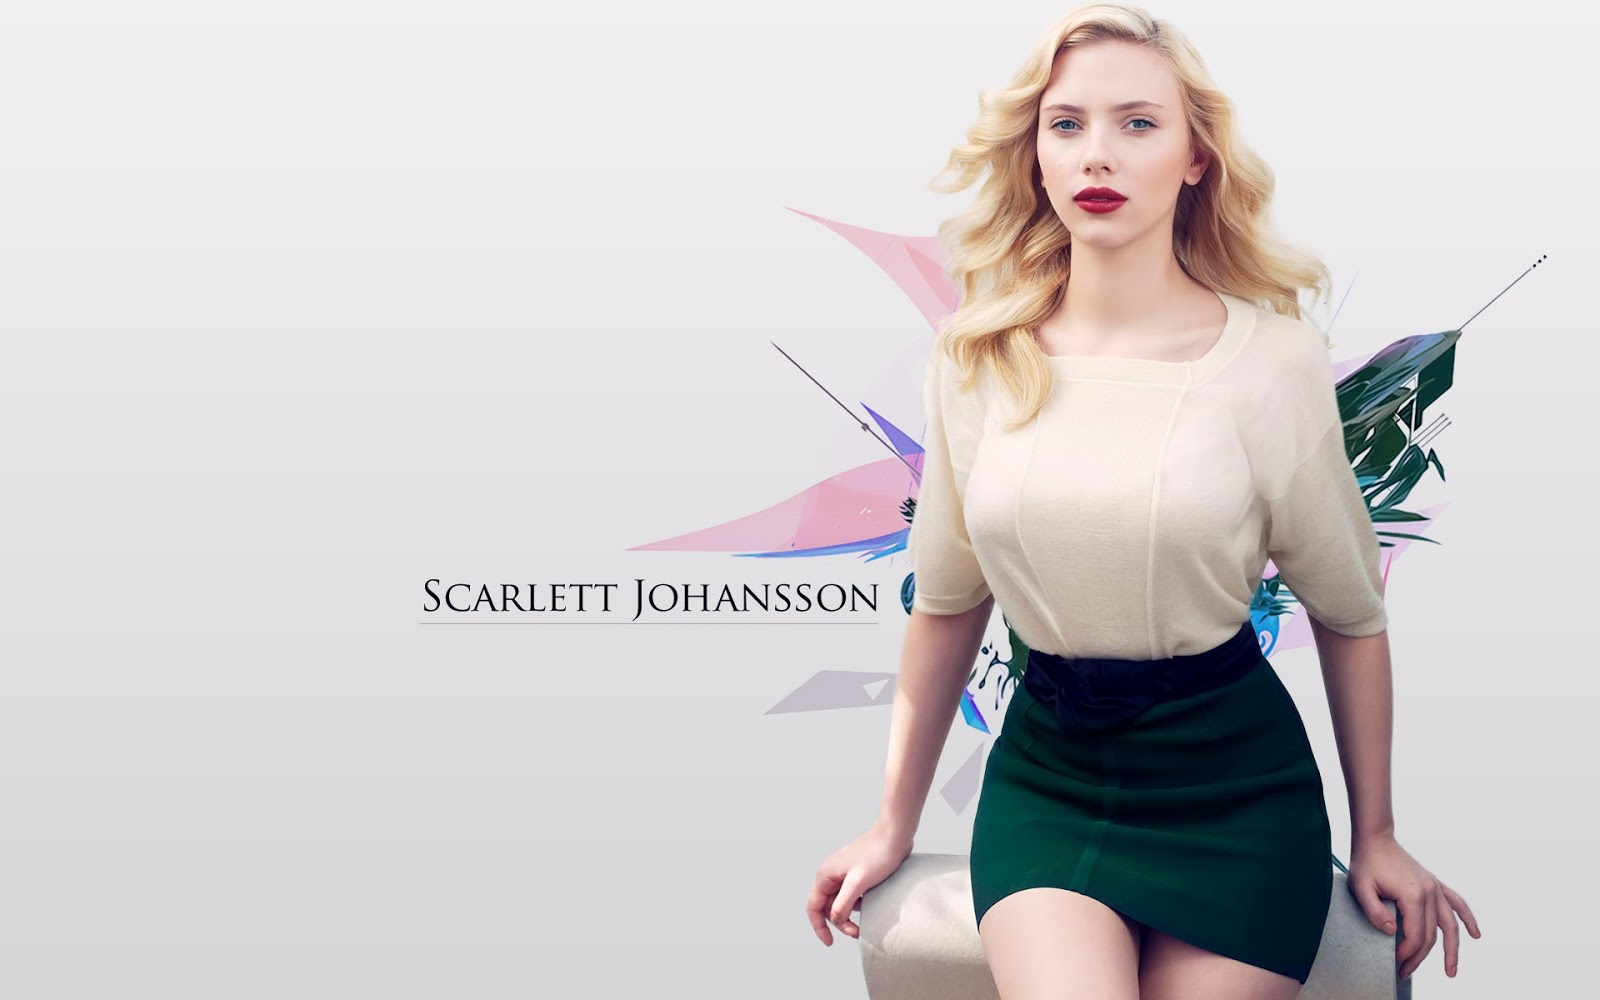 Scarlett Johansson Wallpaper: Scarlett Johansson Hollywood Actress Hot And Sexy